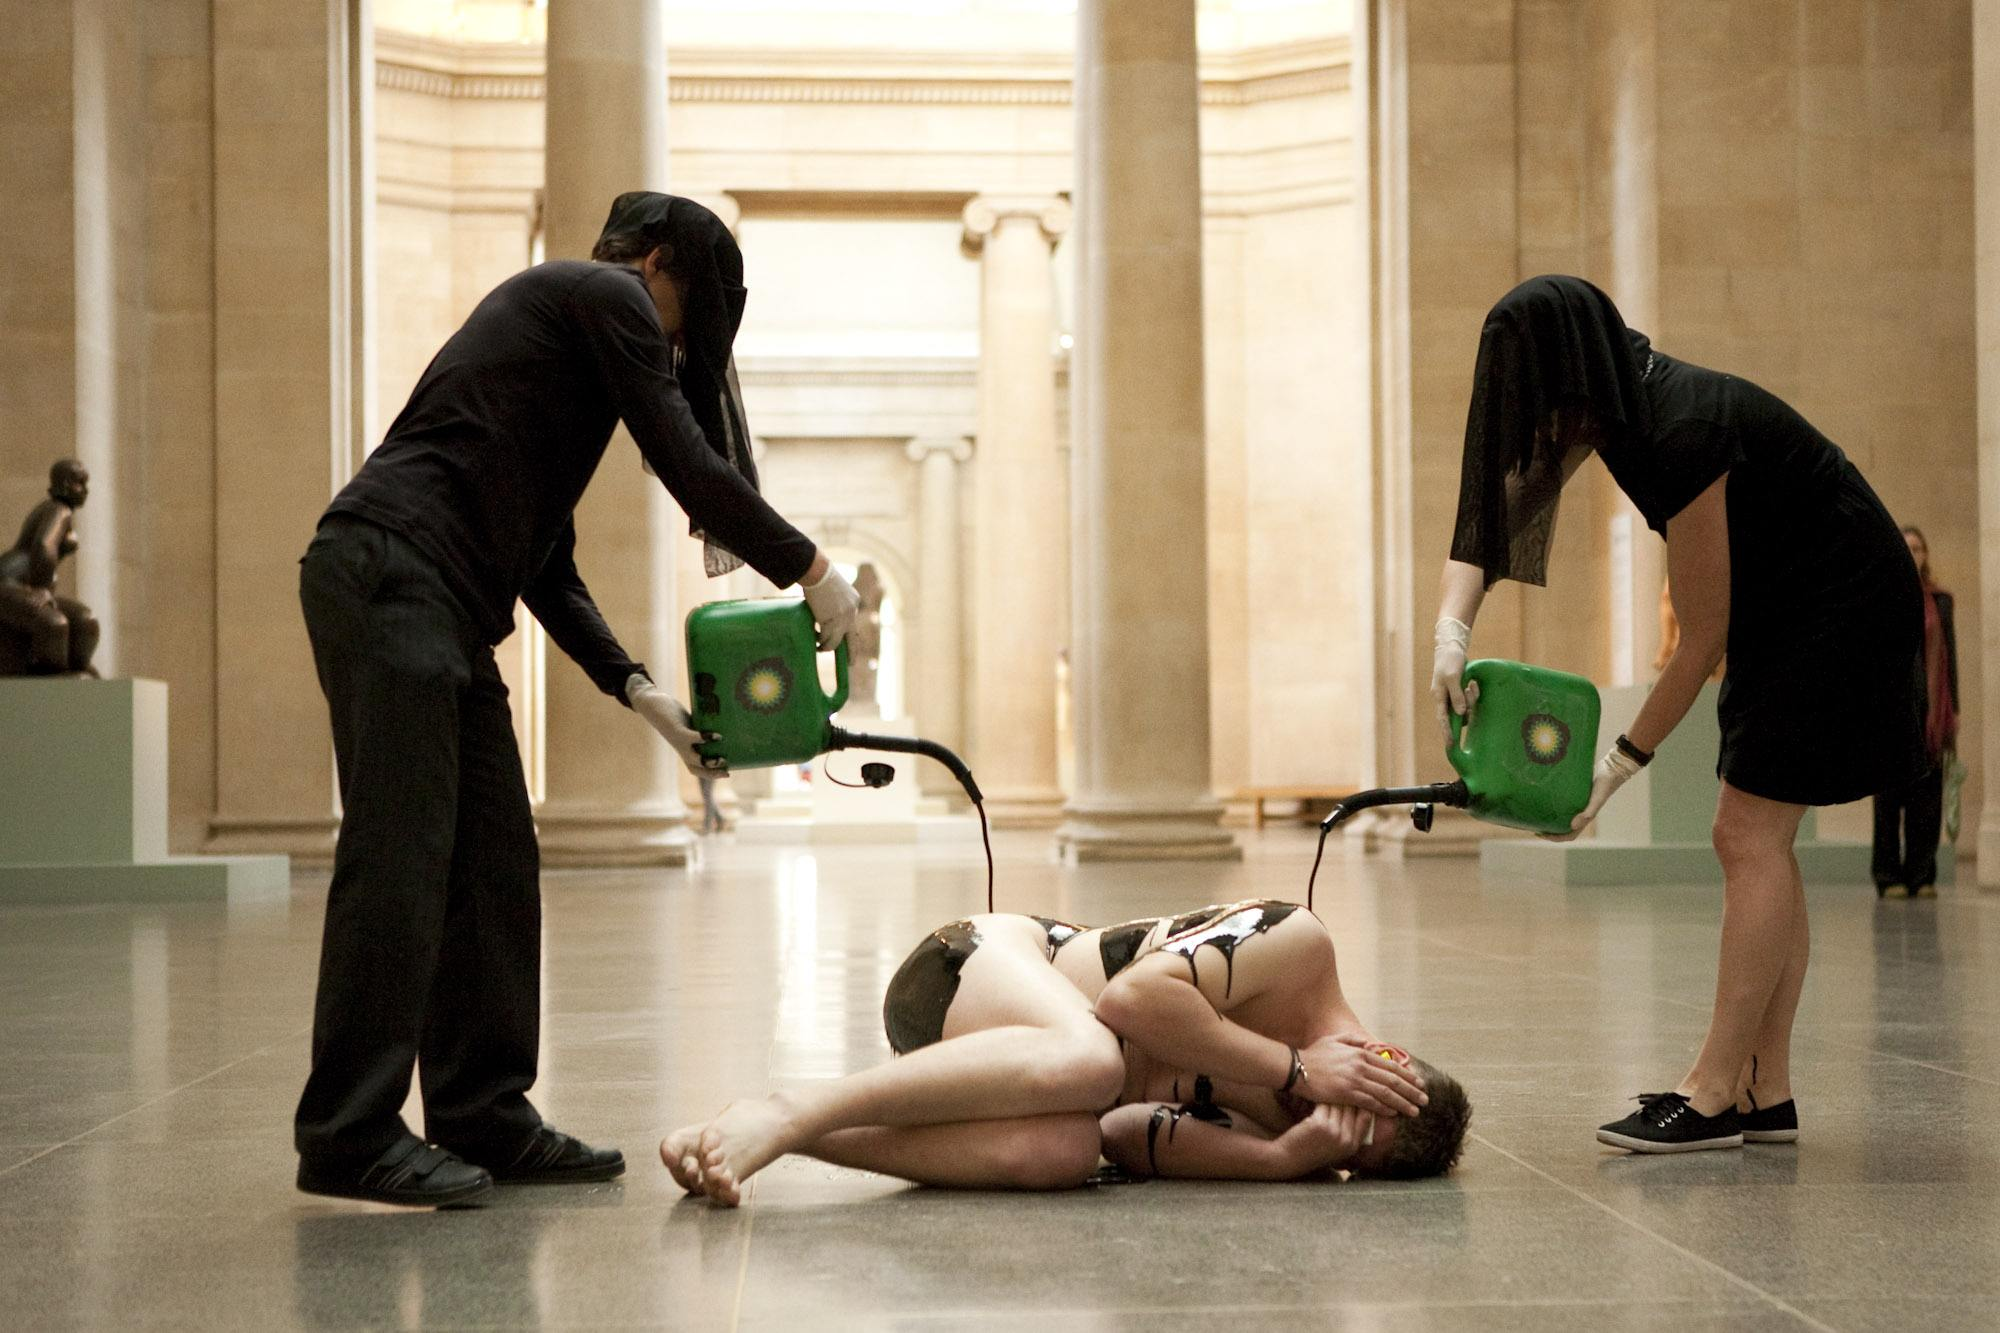 Two Liberate Tate activists pour a liquid resembling oil over a nude body in a gallery.